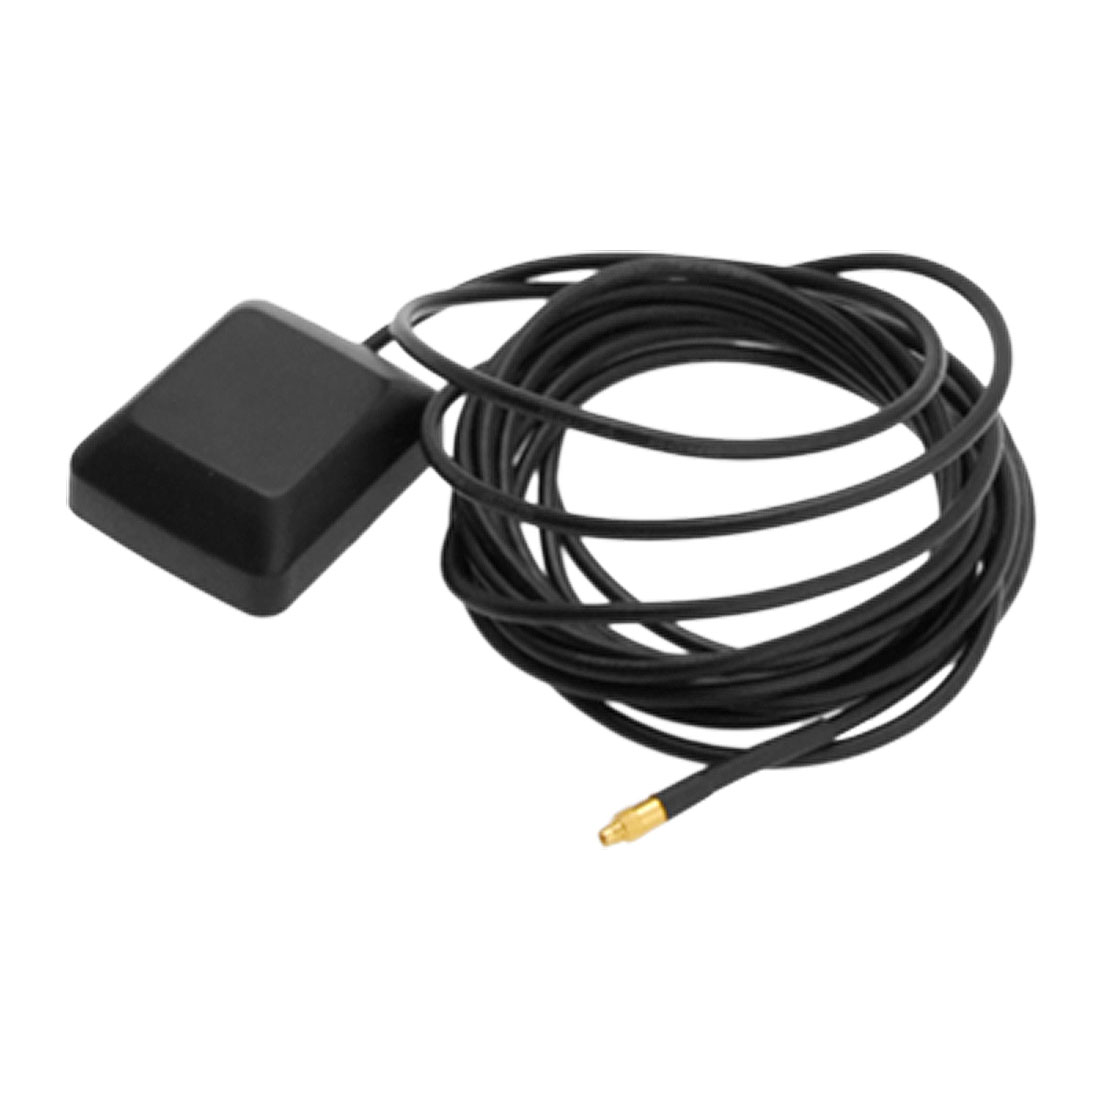 MMCX GPS Antenna Aerial for Receiver Garmin Holux